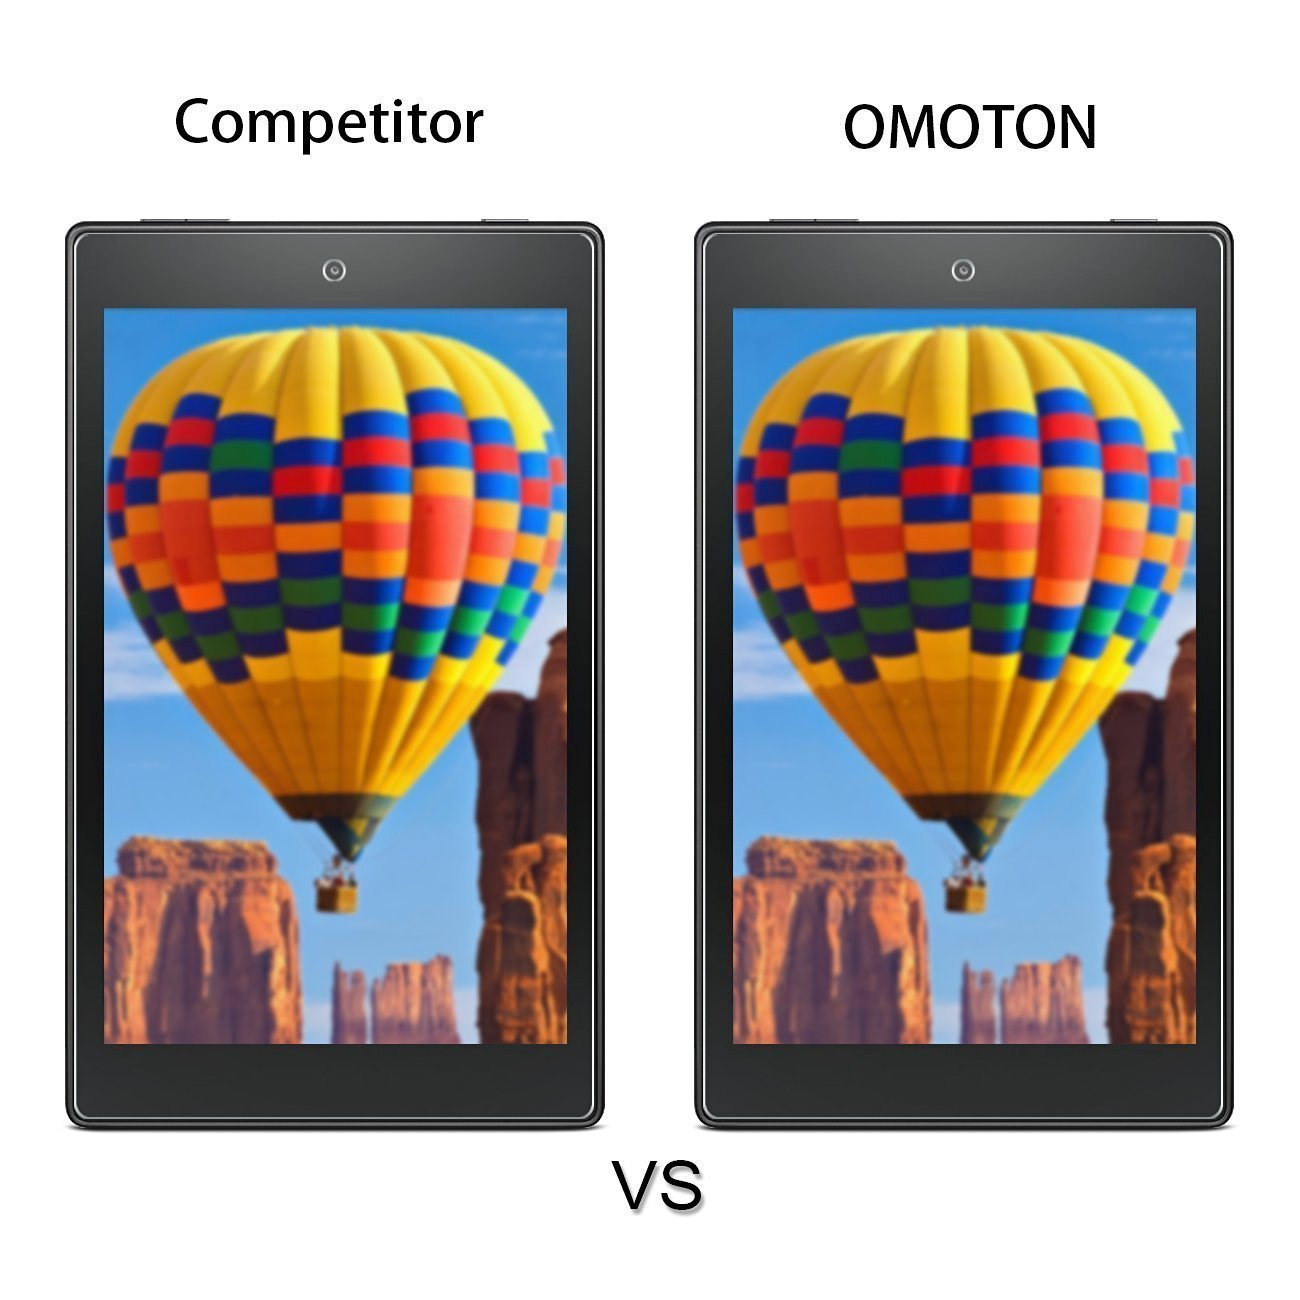 [2-Pack] All-New Fire 7 Screen Protector (2017 Release) - OMOTON Tempered Glass Screen Protector for All-New Fire 7 Tablet with Alexa (2017 Release) by OMOTON (Image #6)